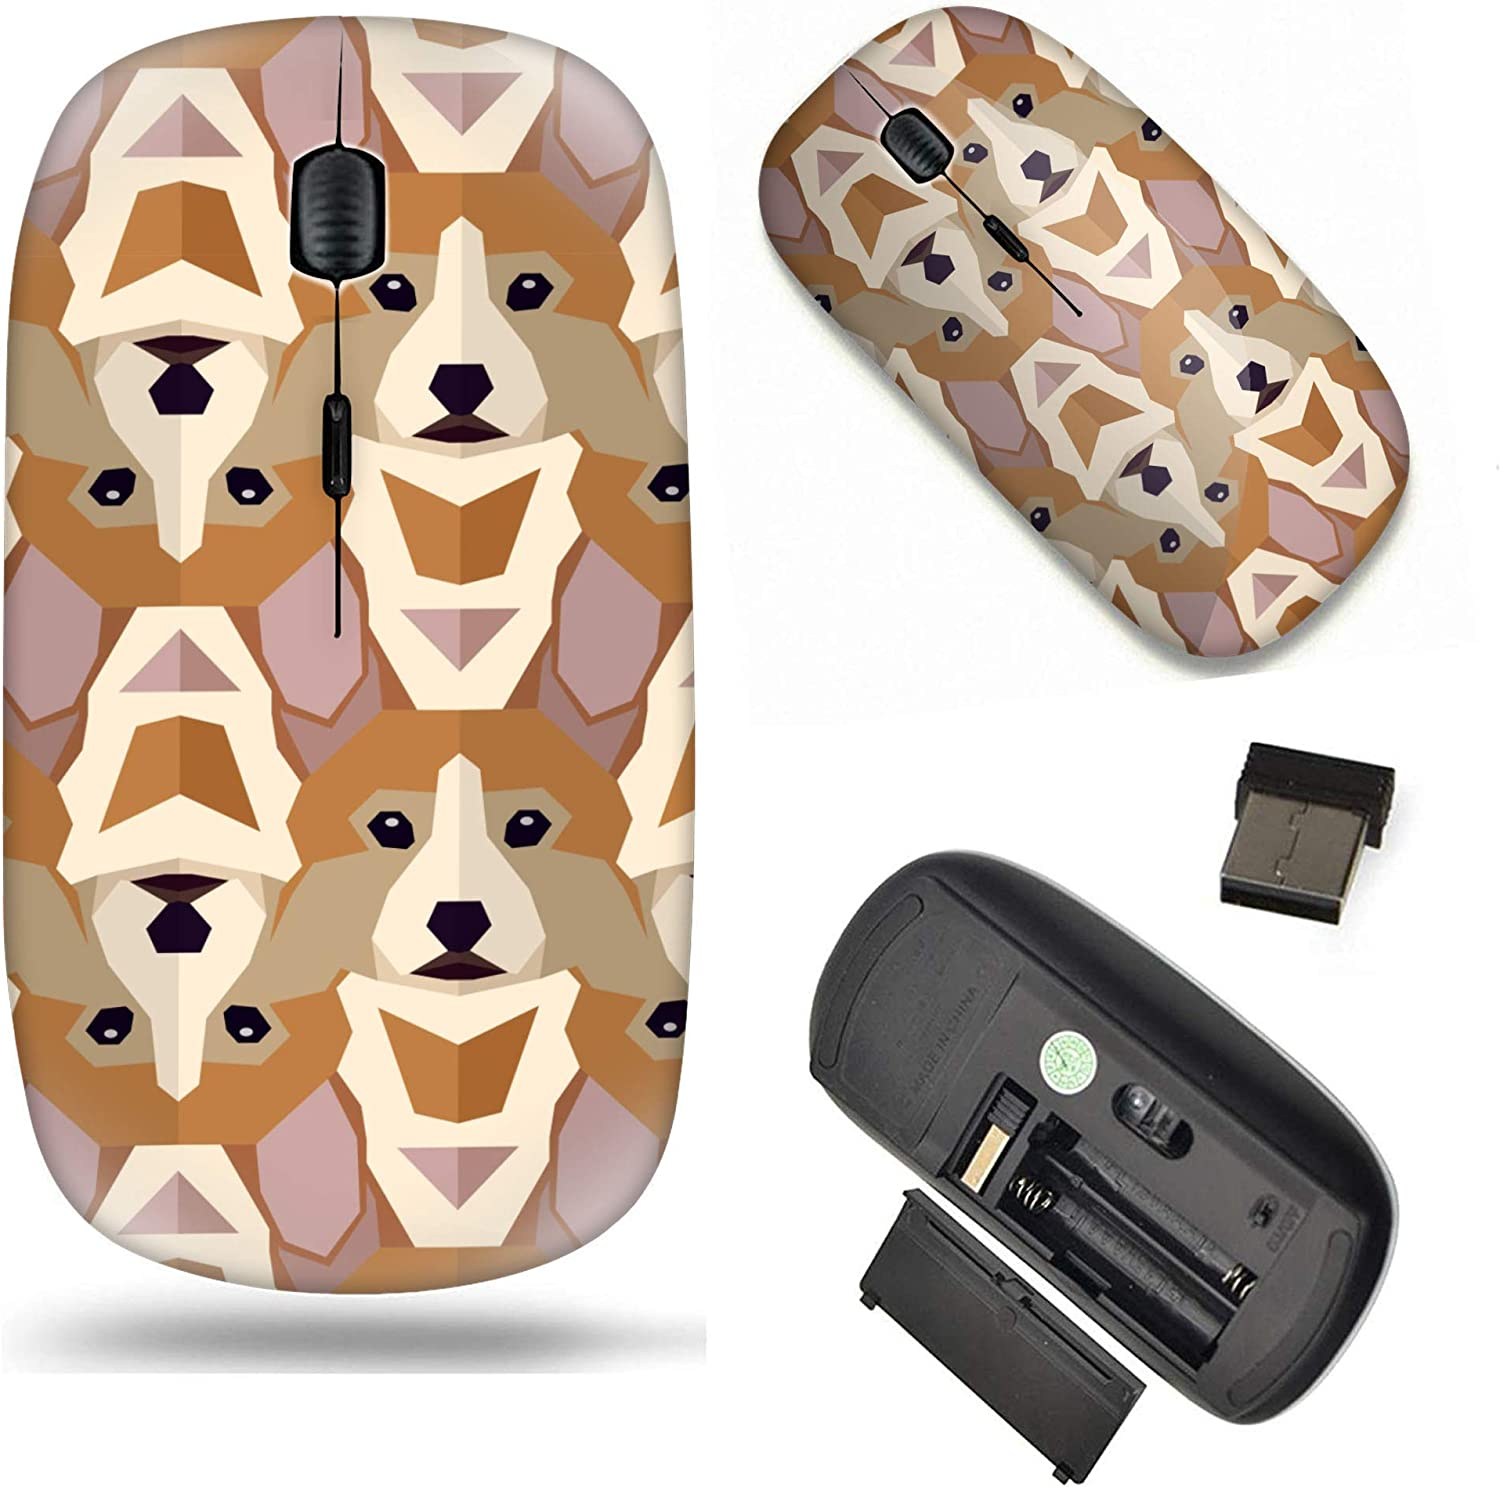 Unique Pattern Optical Mice Mobile Wireless Mouse 2.4G Portable for Notebook Computer PC Laptop Polygonal Pattern with Welsh Corgi